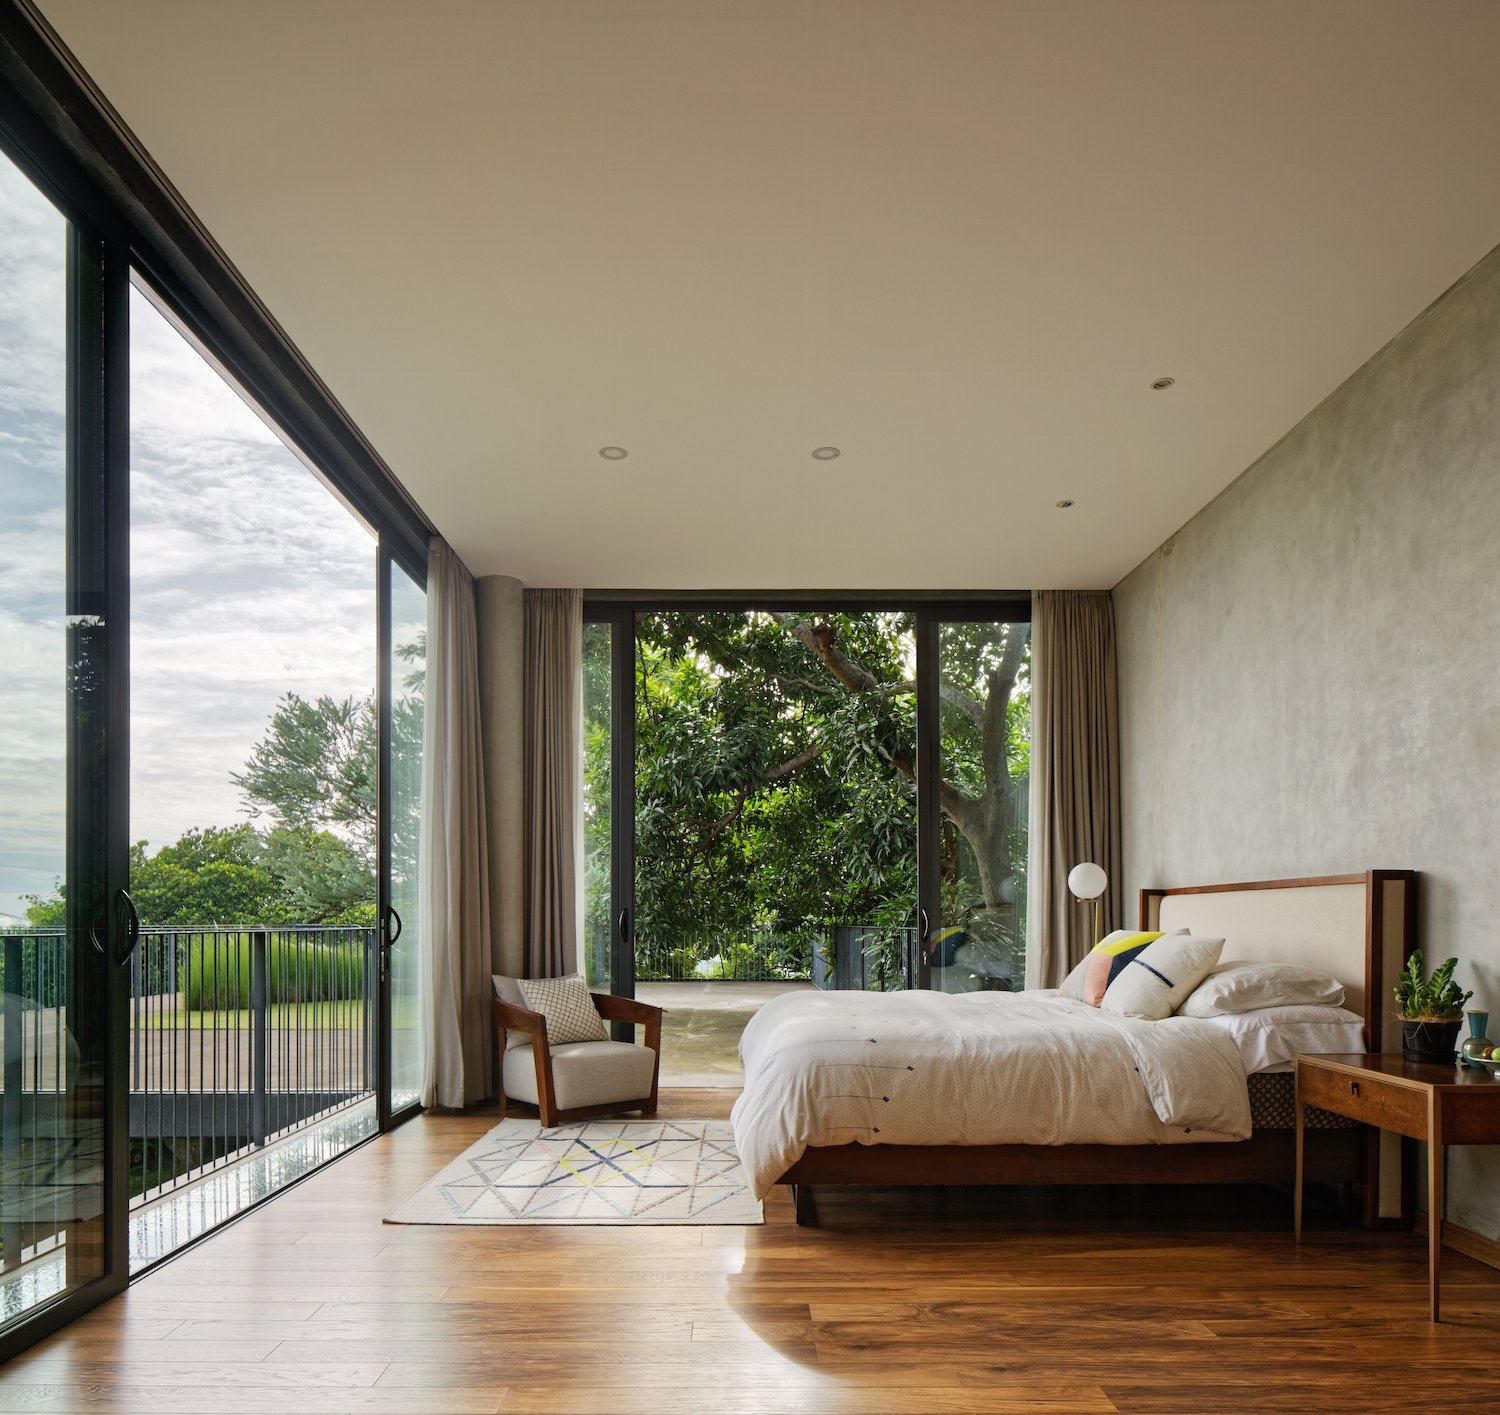 The bedroom on the second floor has a treehouse-like feel.